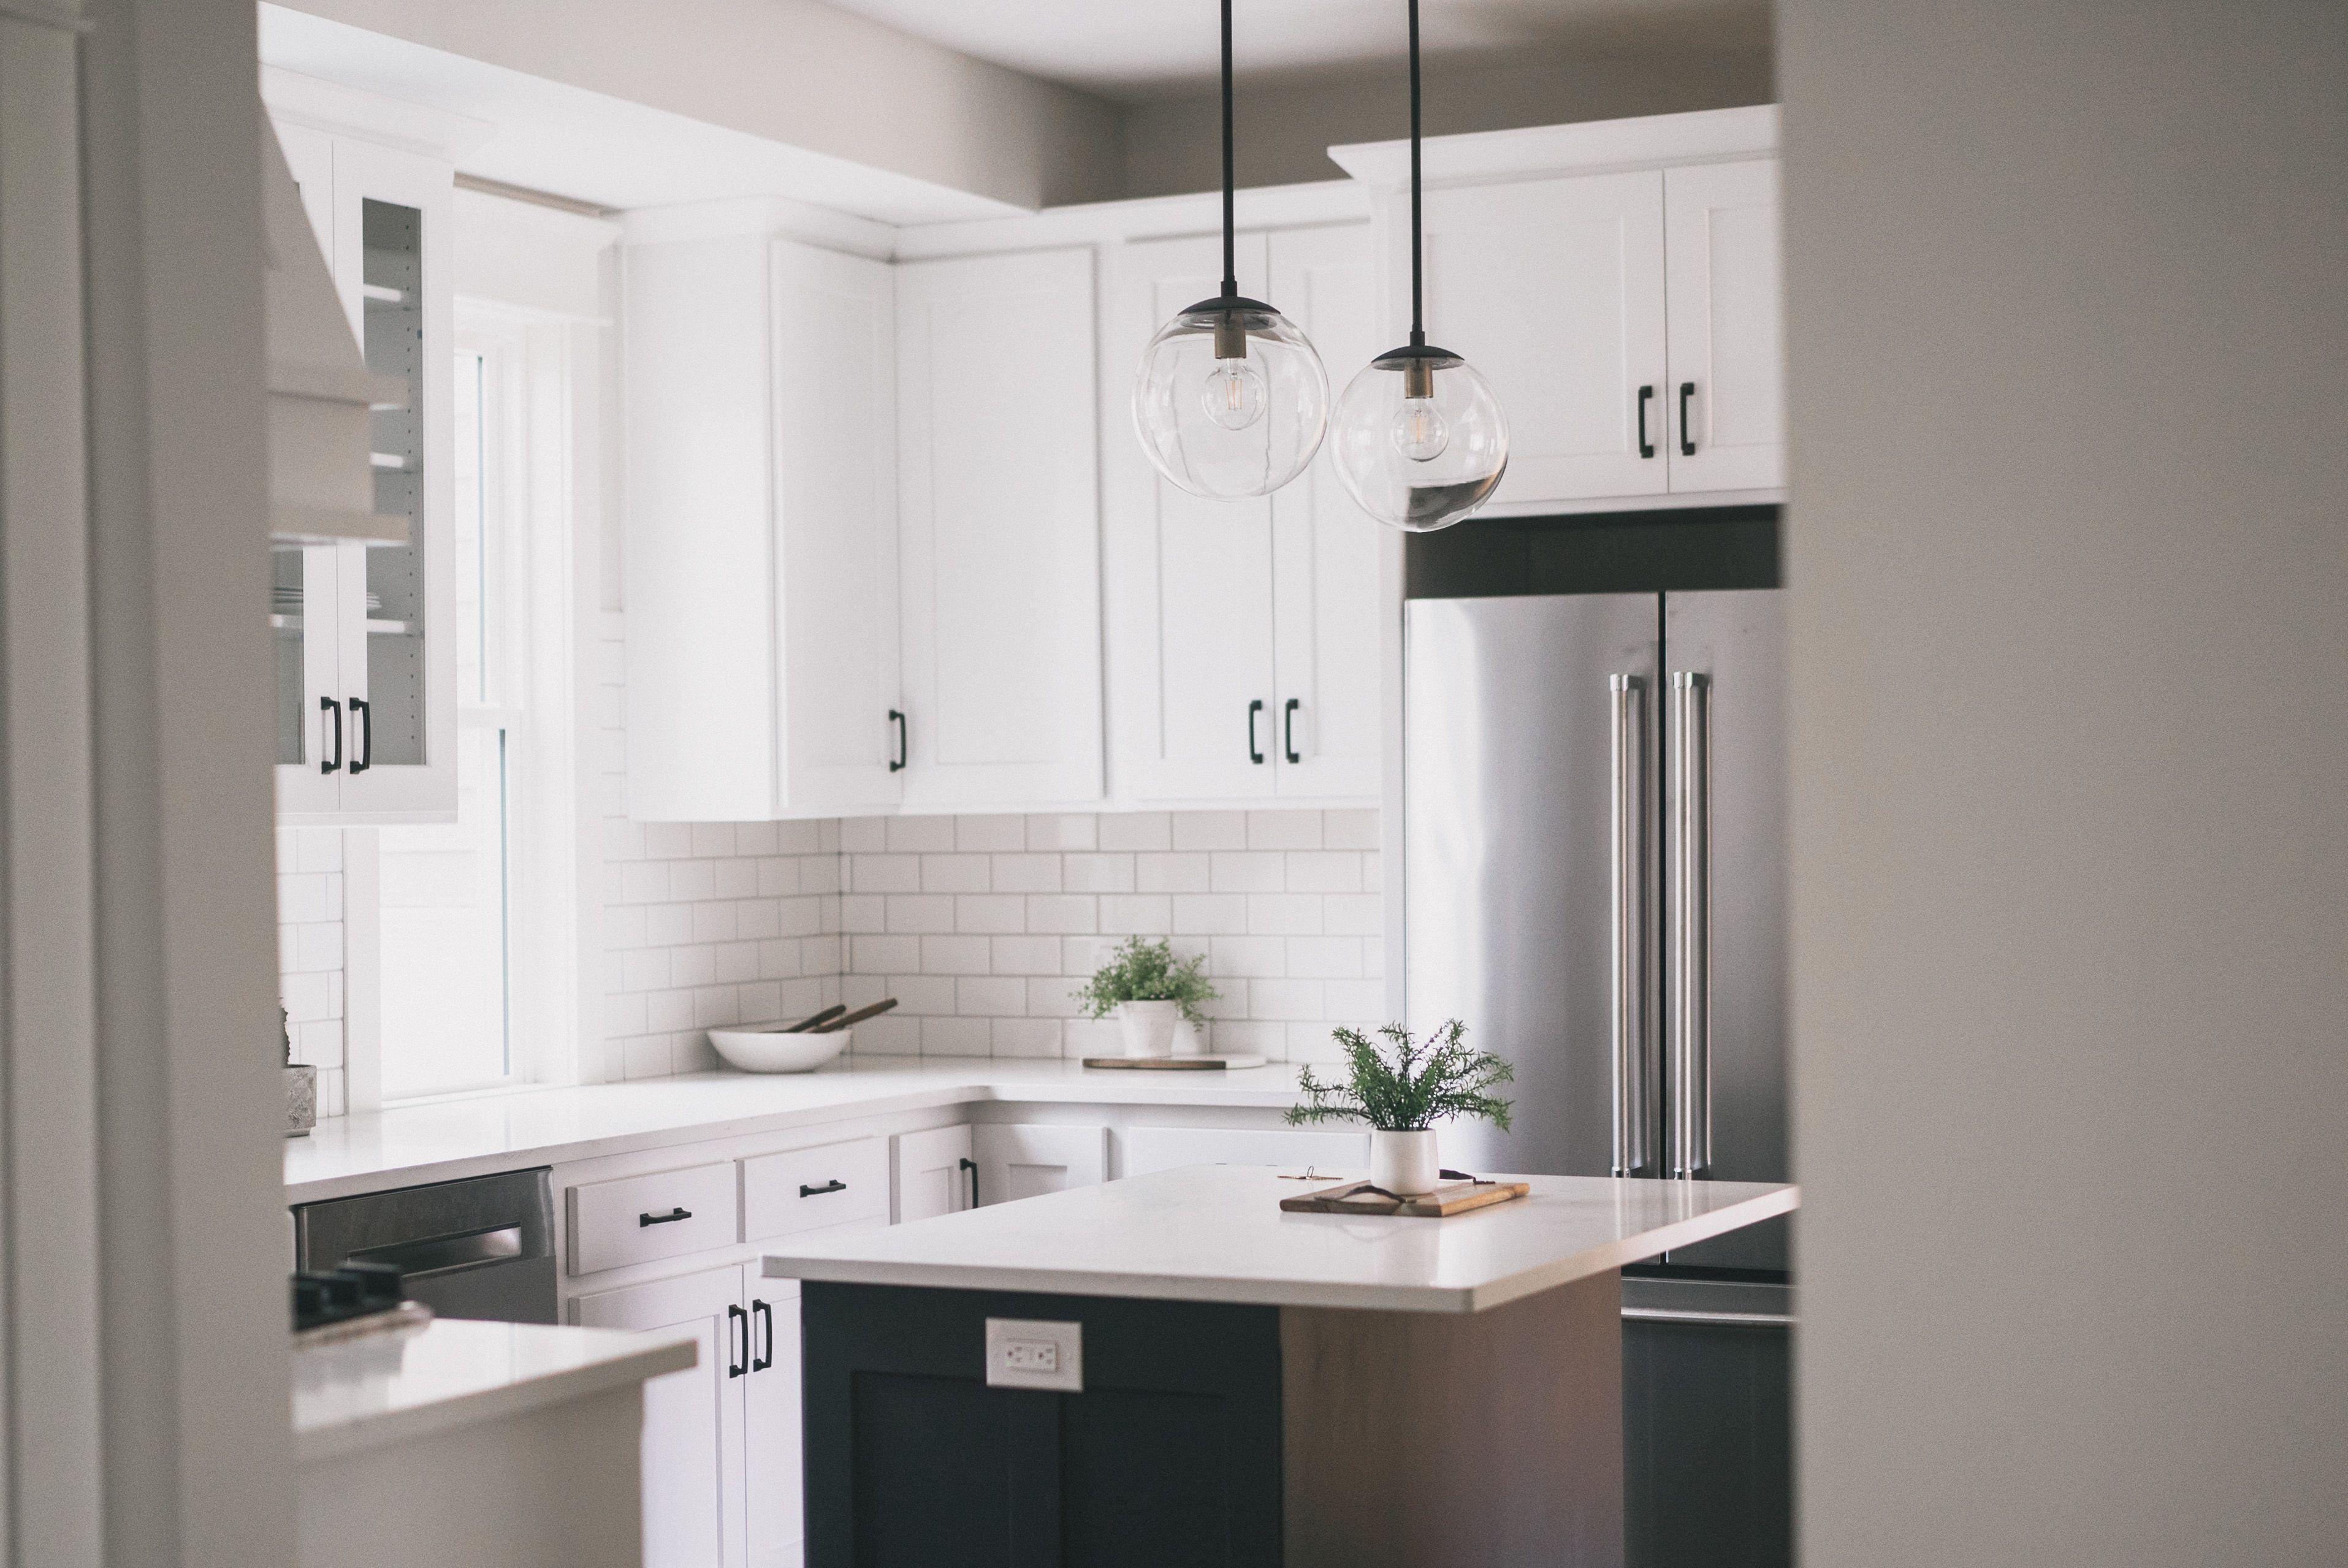 Clean White Kitchen Globe Light Fixtures And White Subway Tile Remodel Flipping Houses White Subway Tile